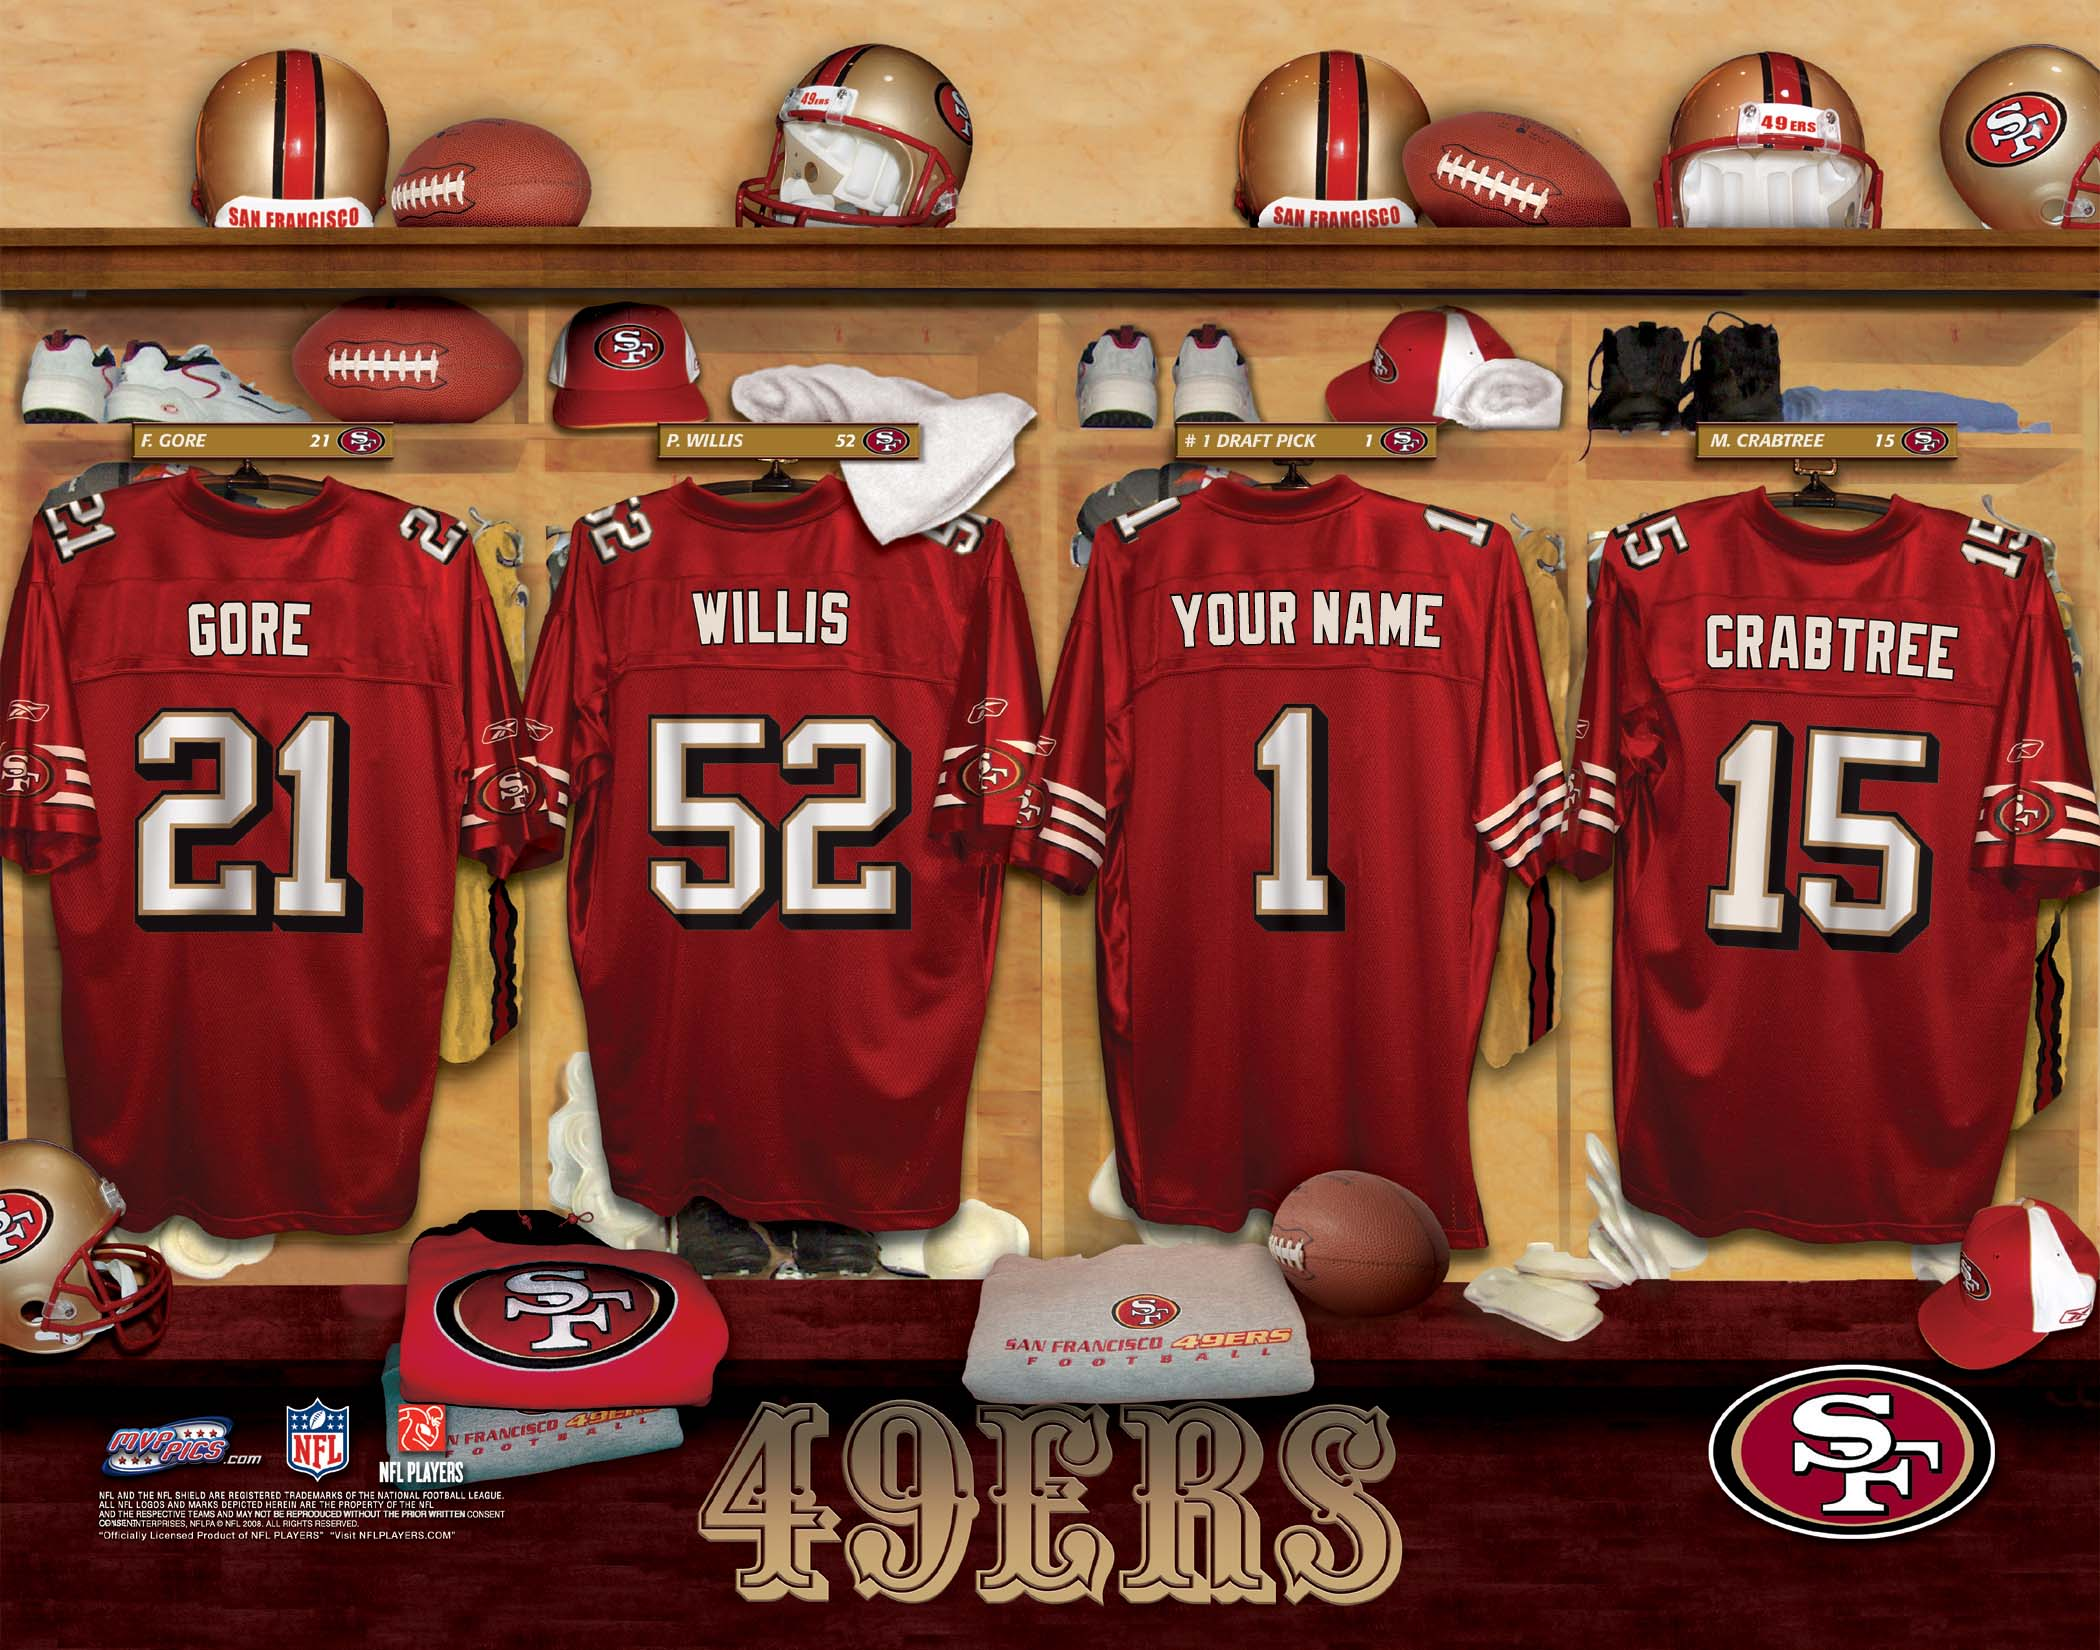 San francisco 49ers wallpapers 2015 wallpaper cave san francisco 49ers wallpaper 2014 sky hd wallpaper voltagebd Image collections